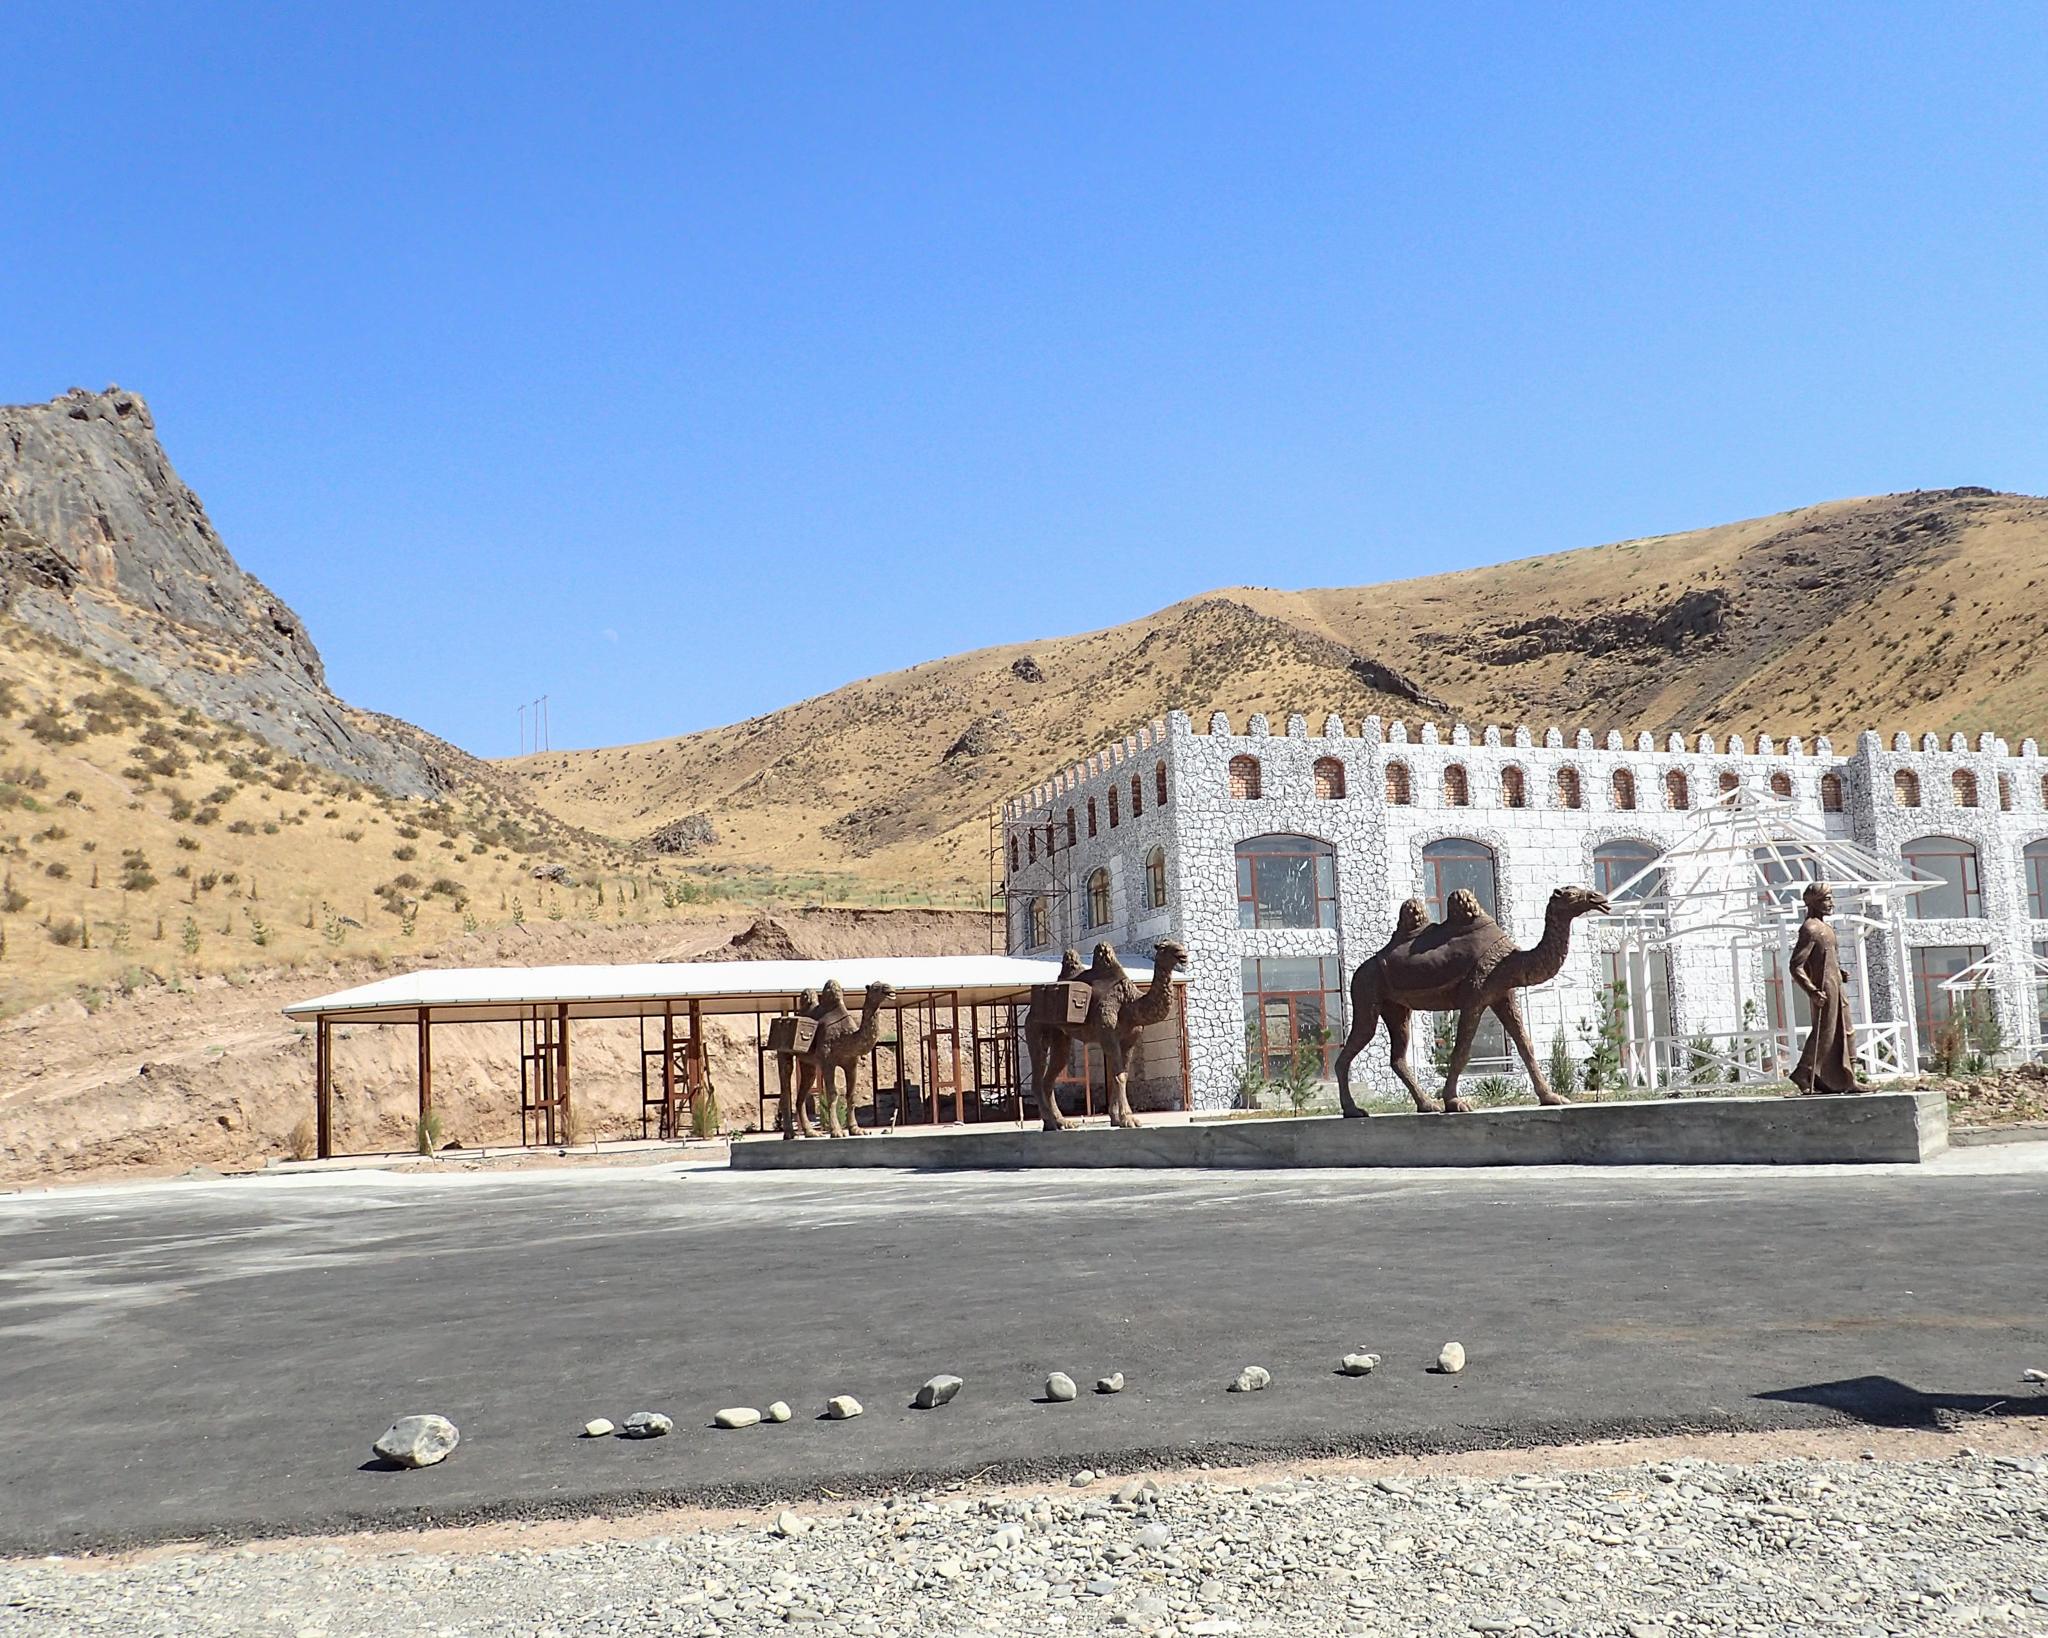 Hotel? With camel statues.